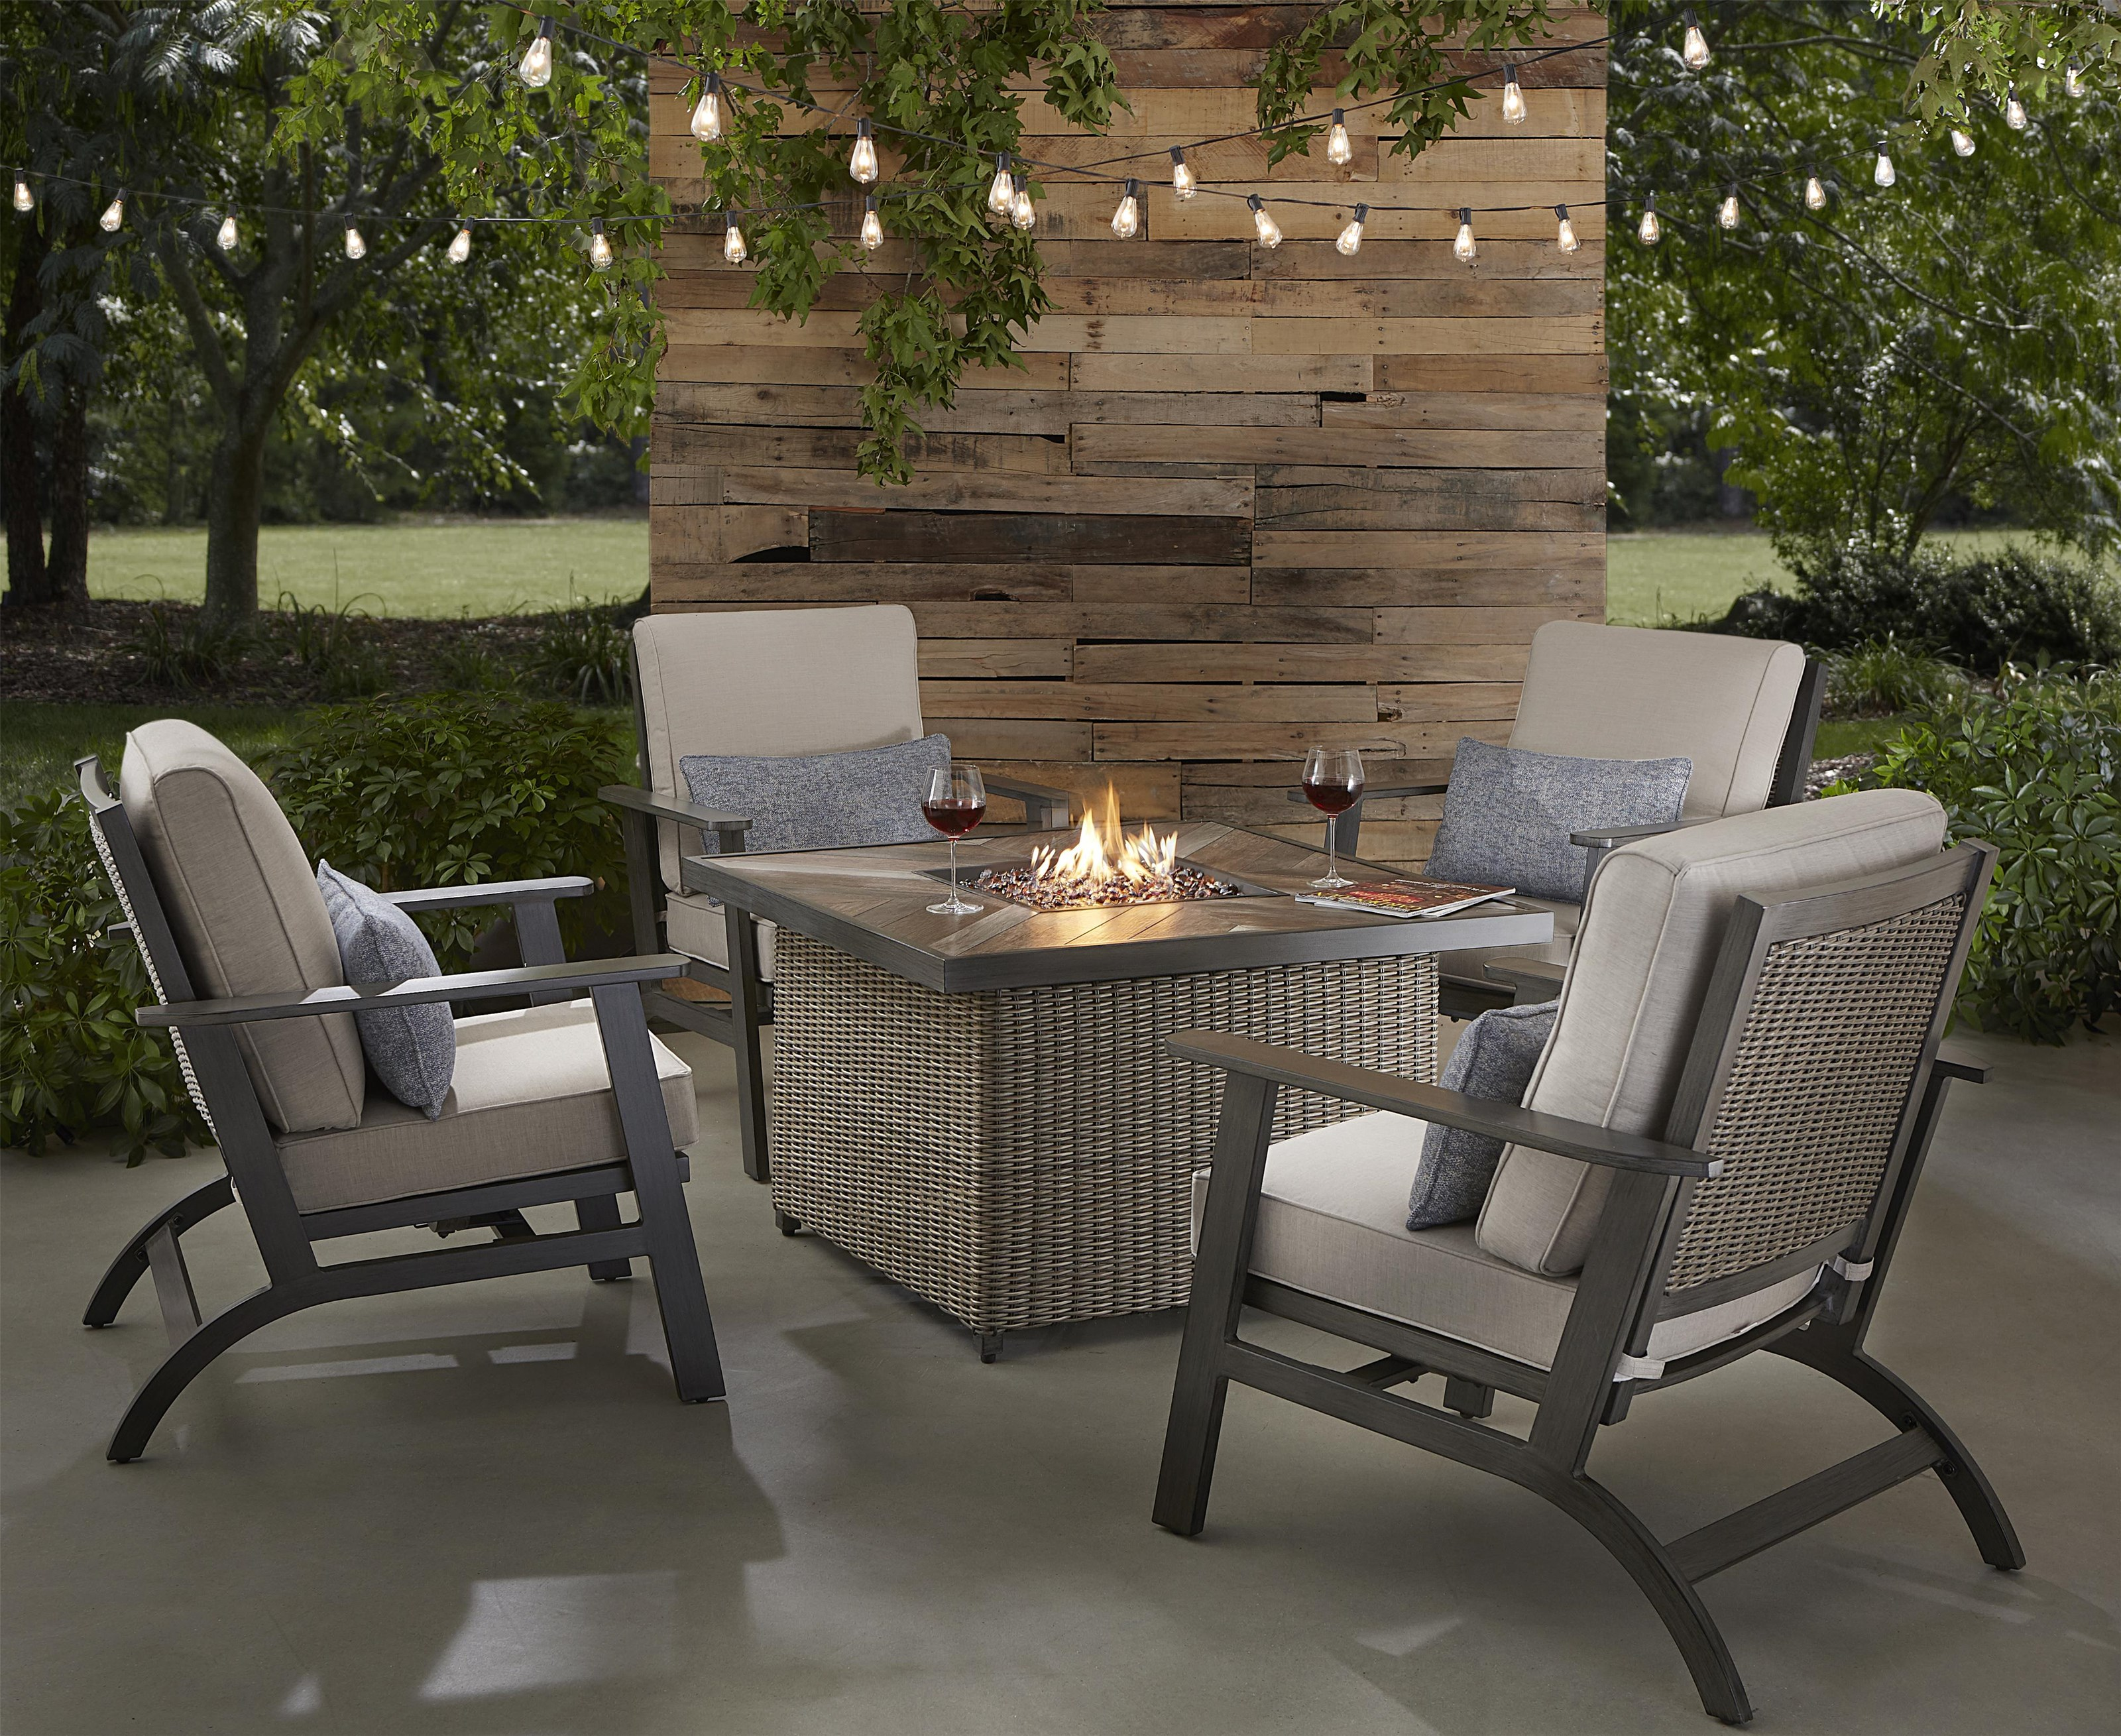 Adison Firepit and 4 Spring Chairs by Apricity Outdoor at Johnny Janosik